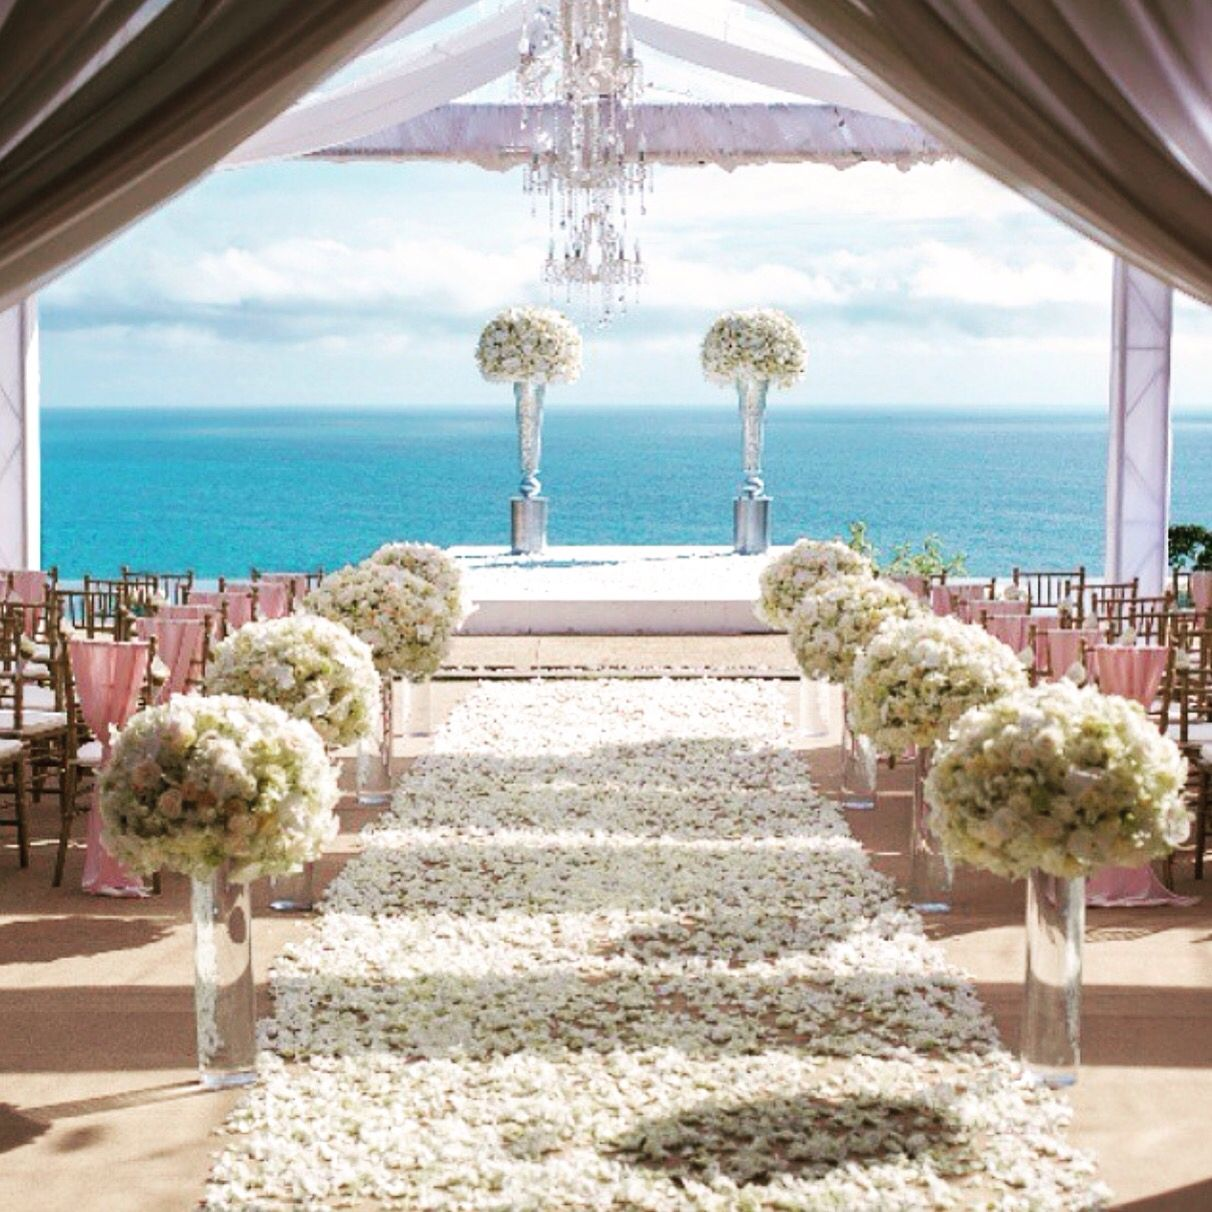 Amazing view to get married  #amazing #place #celebrate #wedding #weddingplanner #boda #bodas #love #bodabogota #events #paradise #destinationwedding #eventosgrupomedina  Photo from @Bridetobride